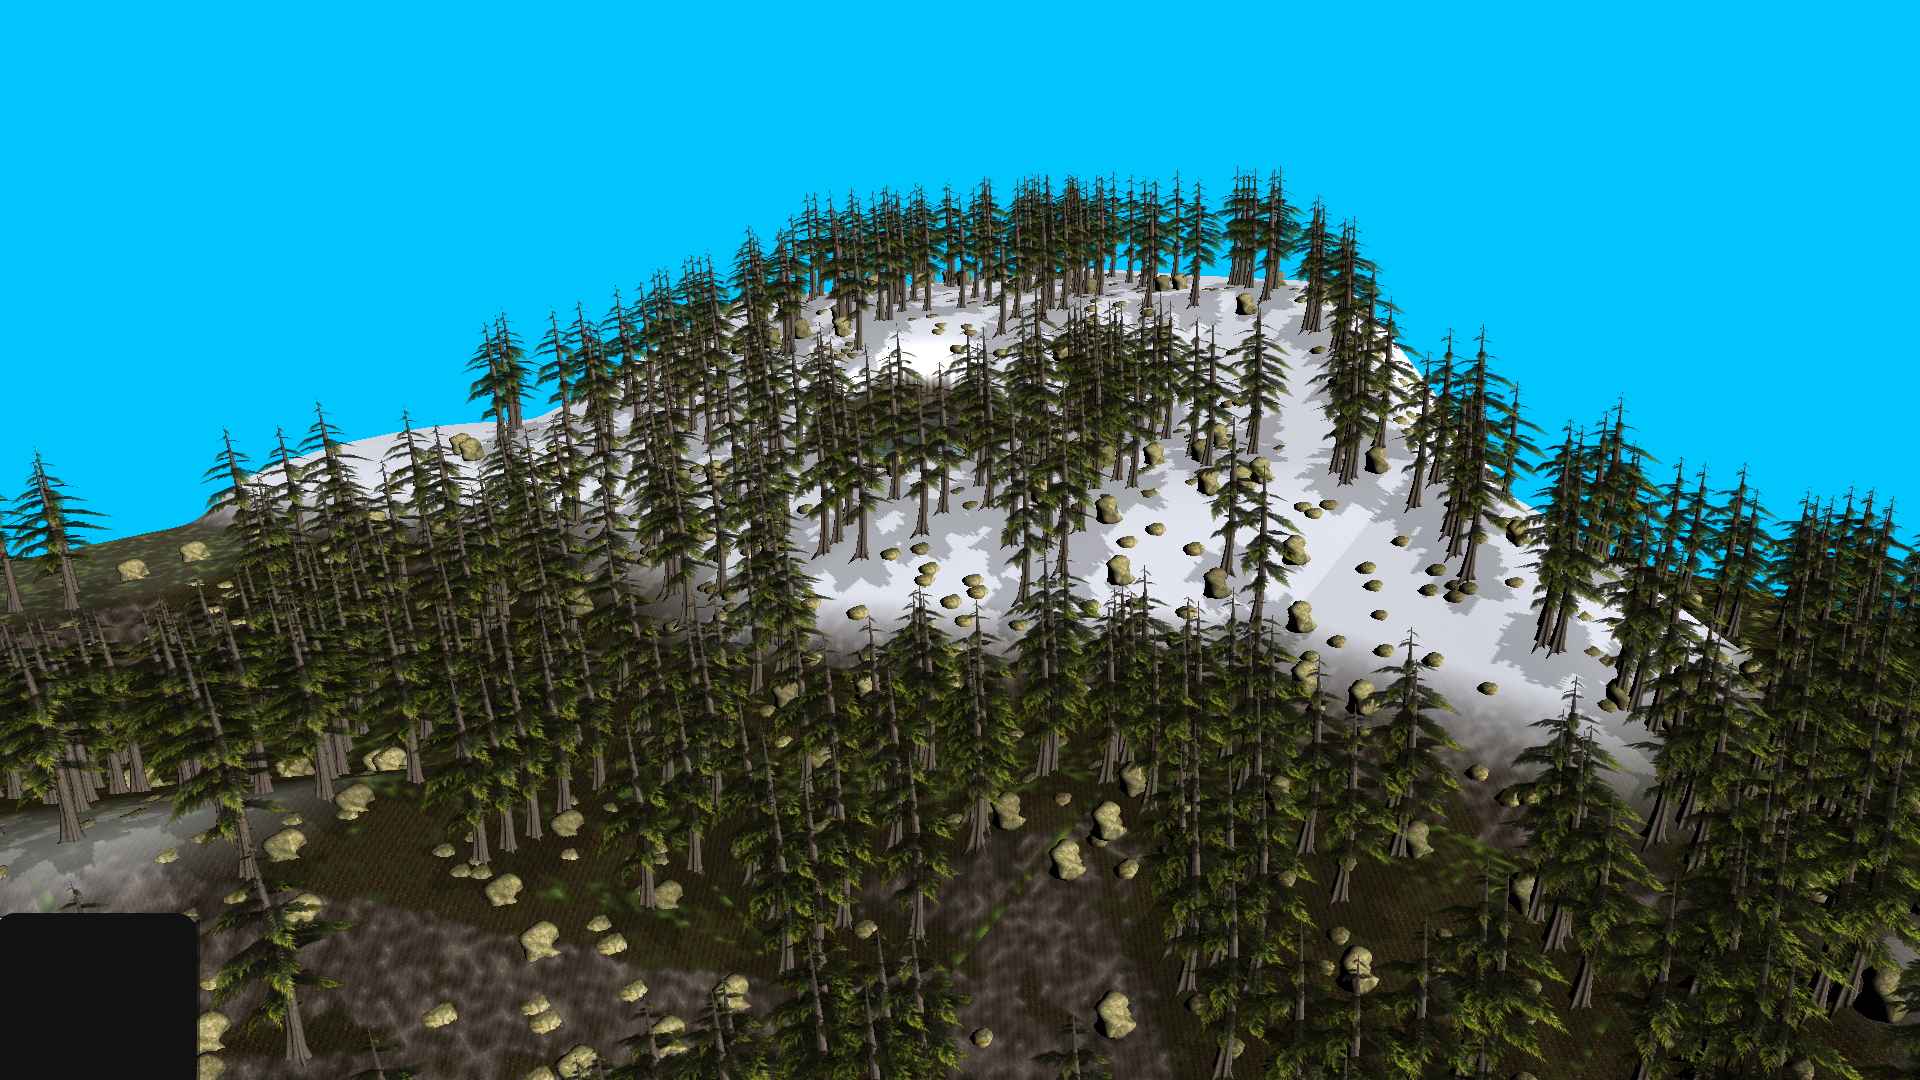 Snowy Mountain with High Peak!